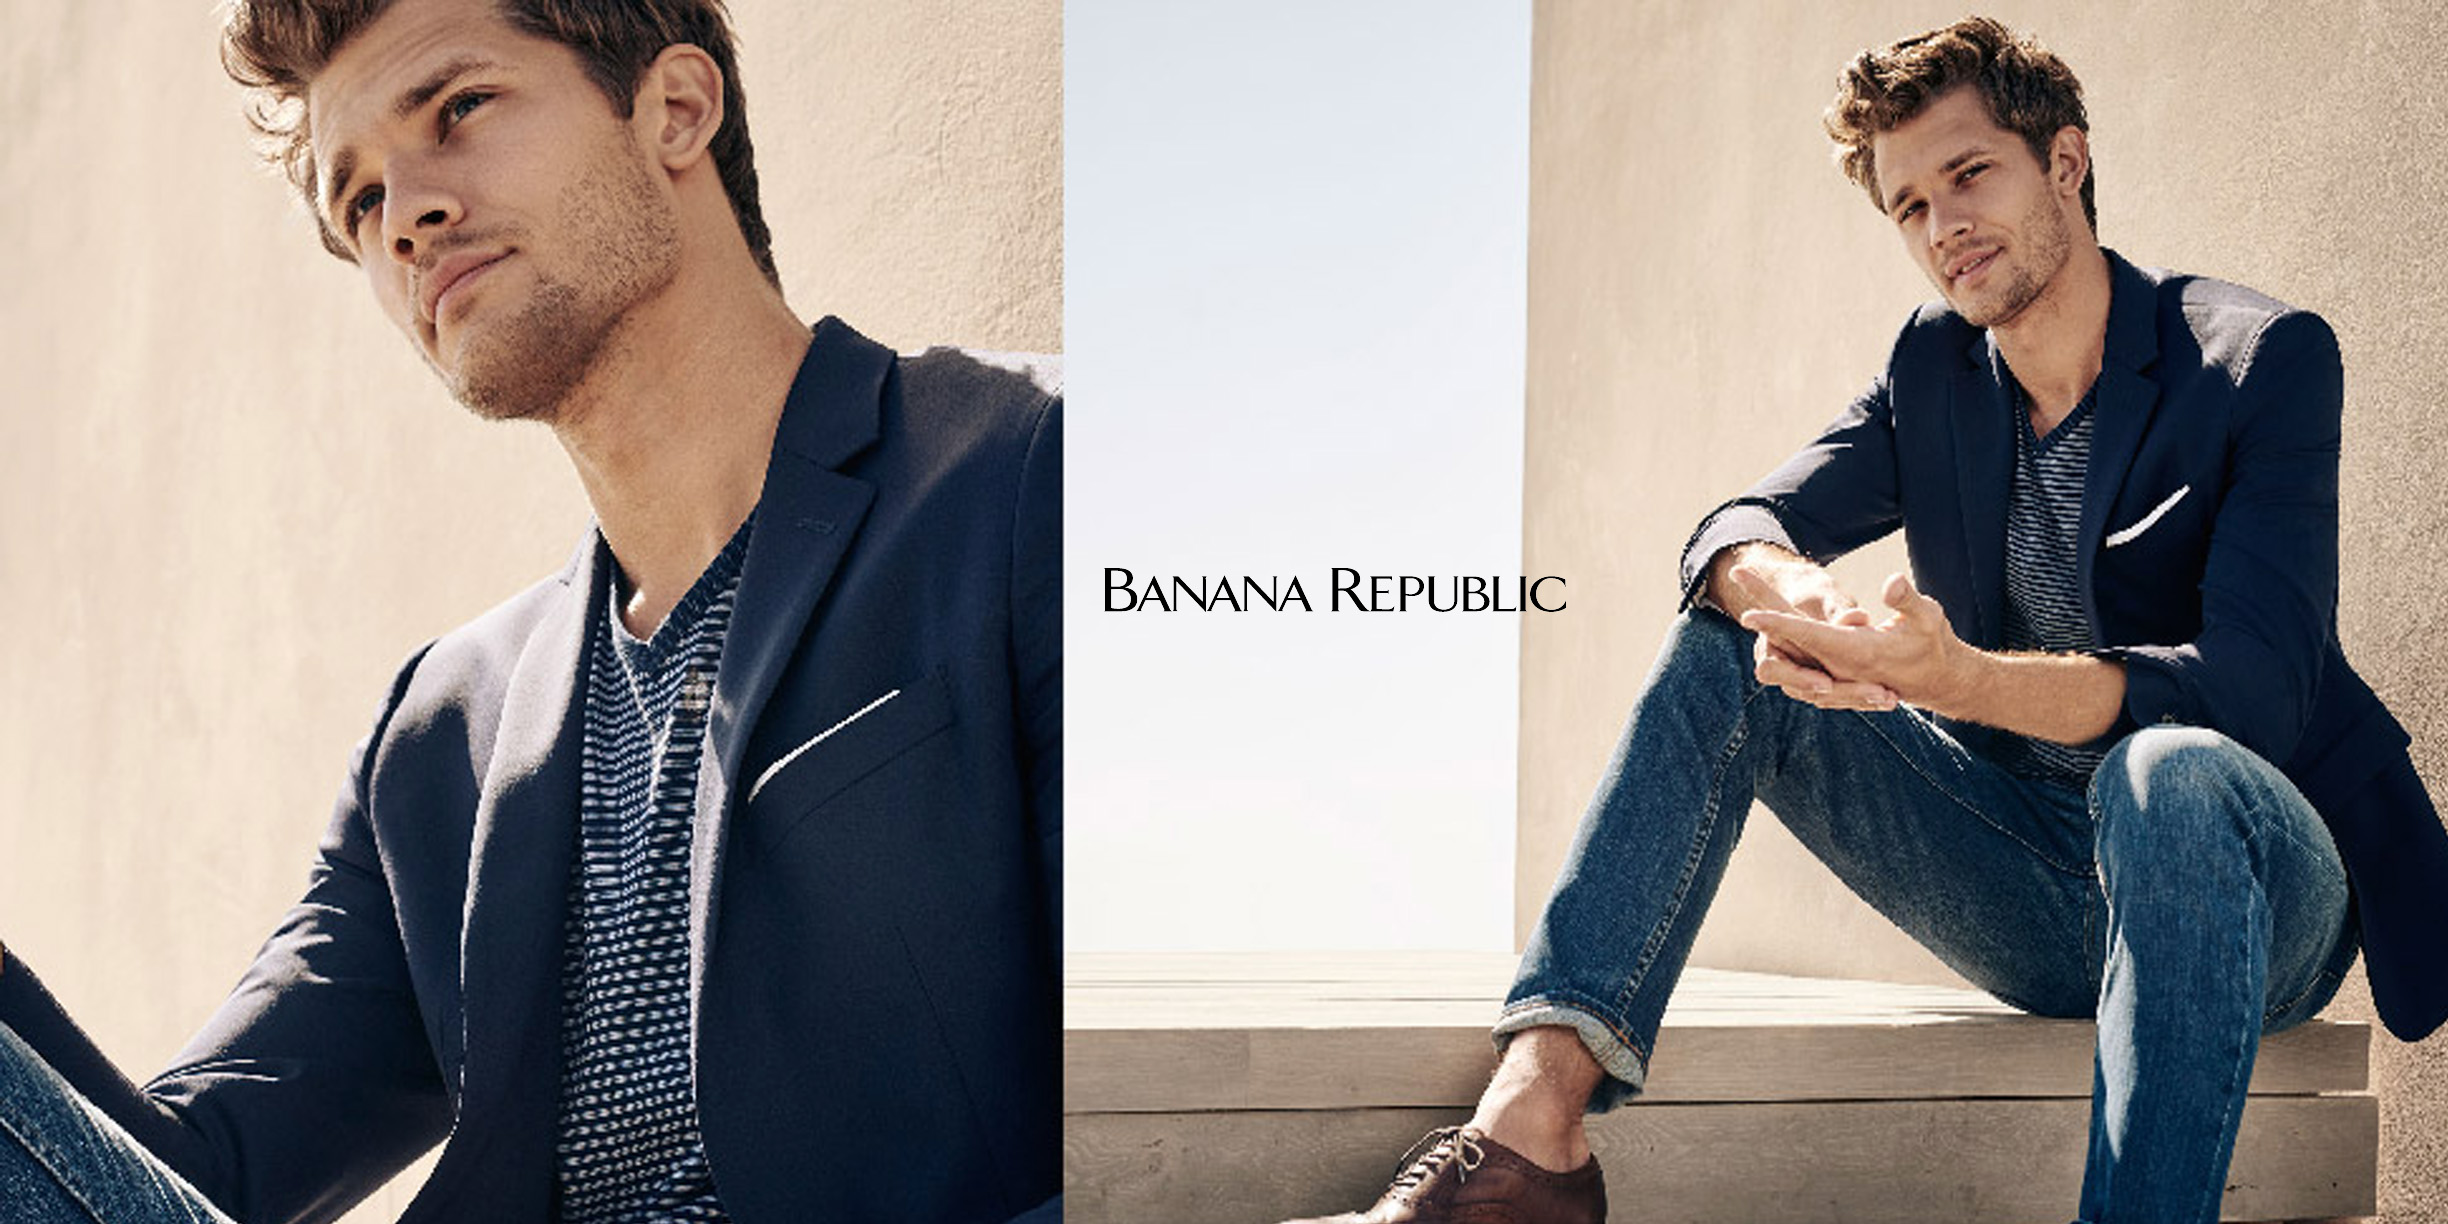 Banana Republic Factory rolls out its Black Friday deals early with prices from $13